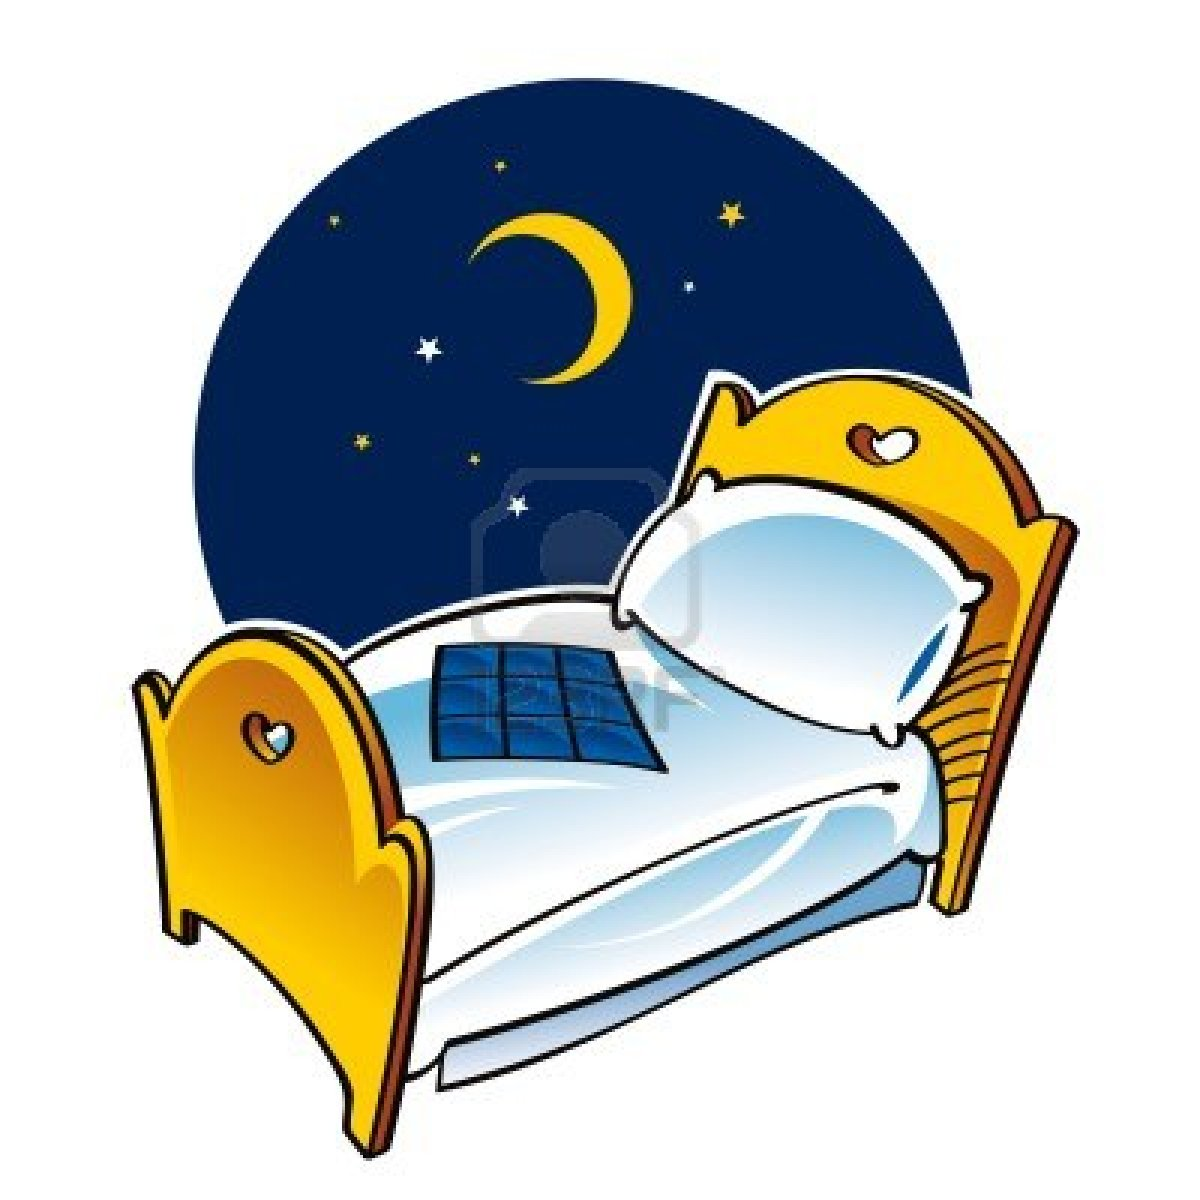 Animated time for bed clipart.